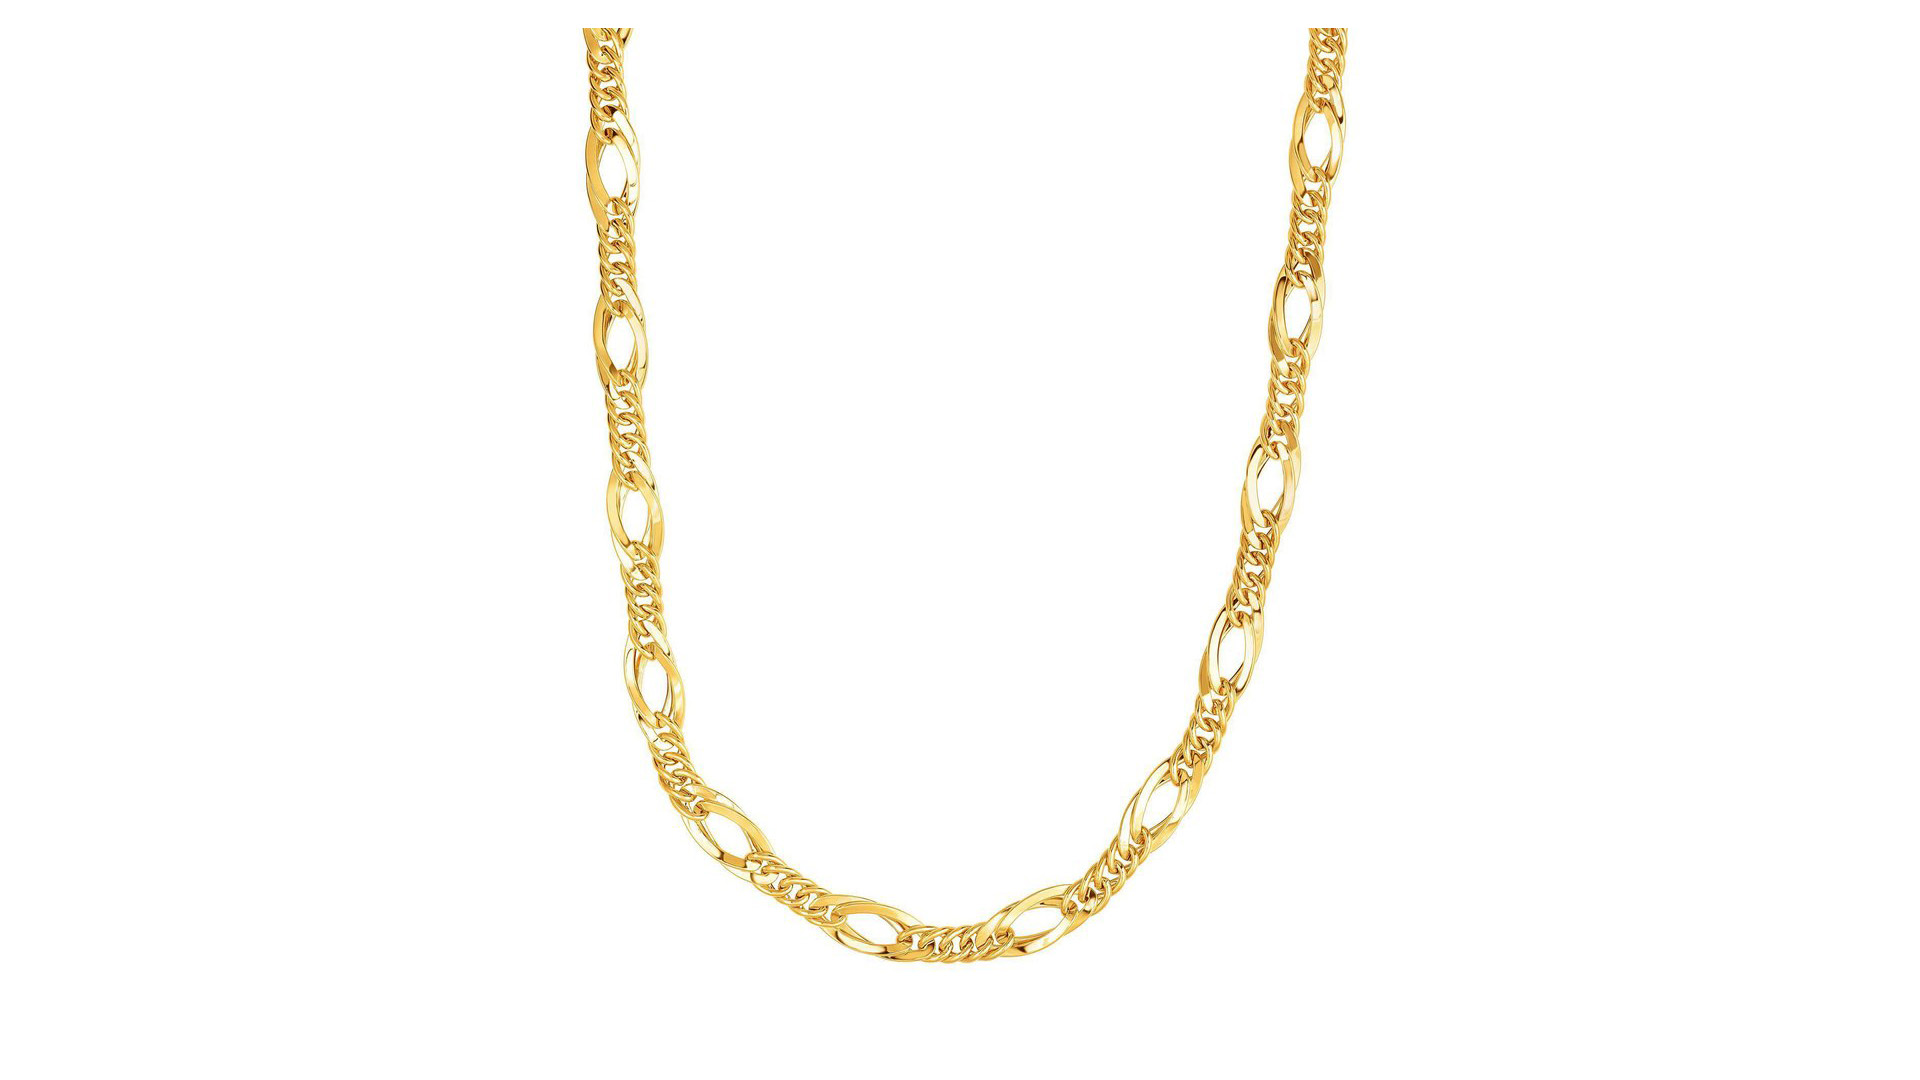 Beautiful Jewelry On Mother's Day Sale - 14k Yellow Gold Oval Link Chain Women's Necklace 18